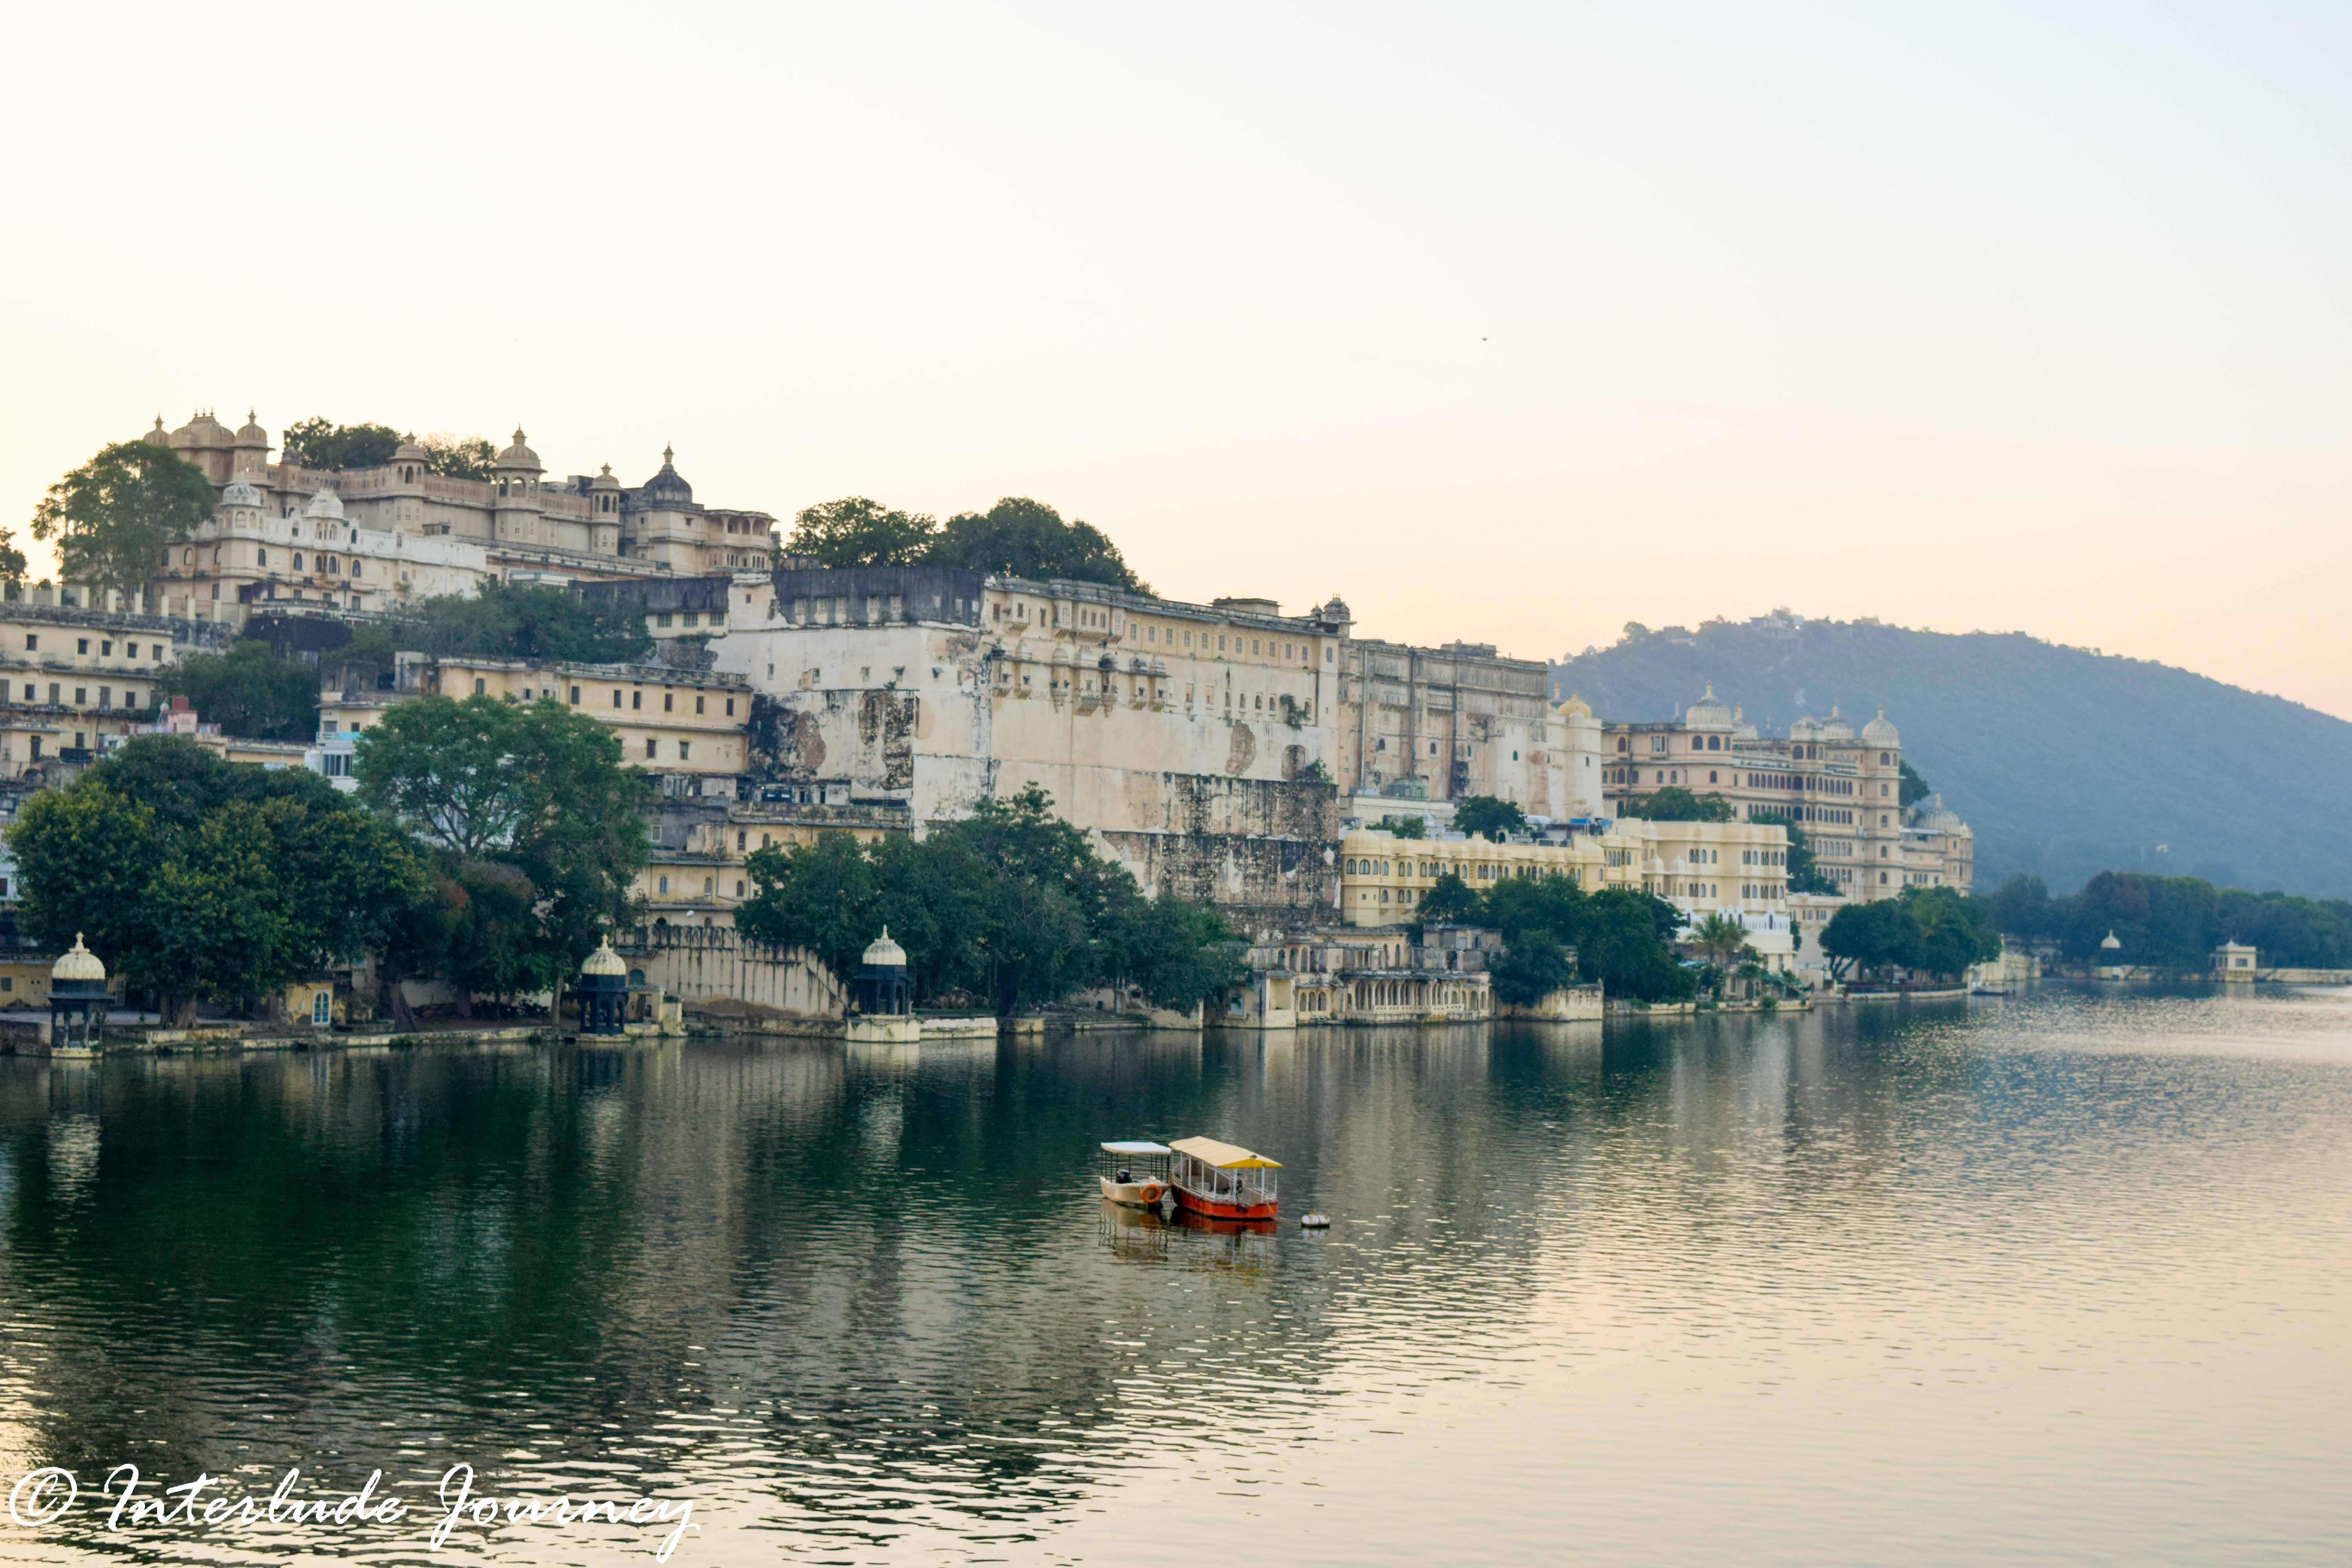 City Place as seen from Hotel Lake Pichola in udaipur